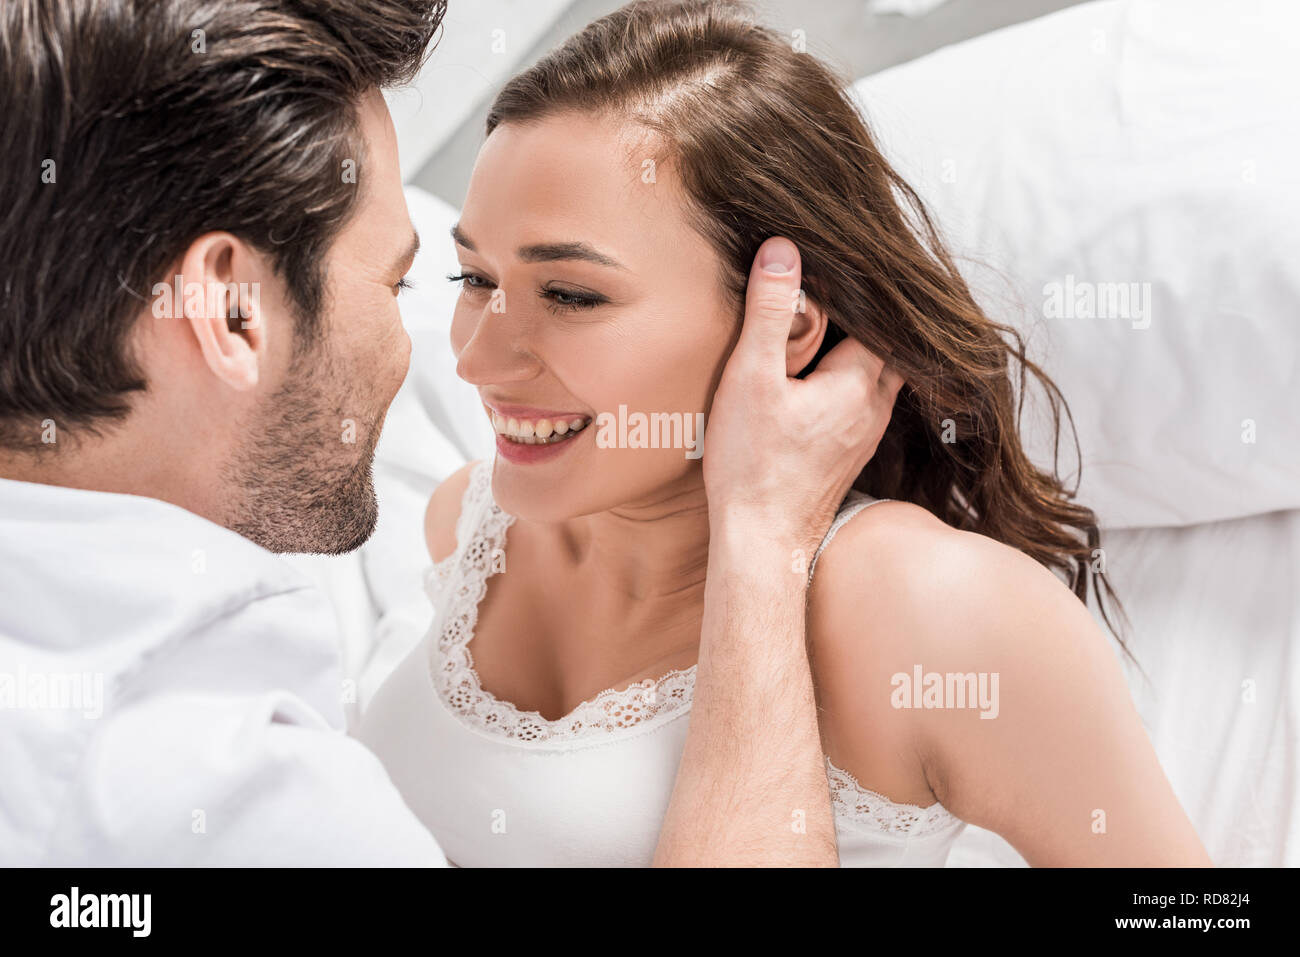 man tenderly touching face of beautiful smiling woman in bed - Stock Image